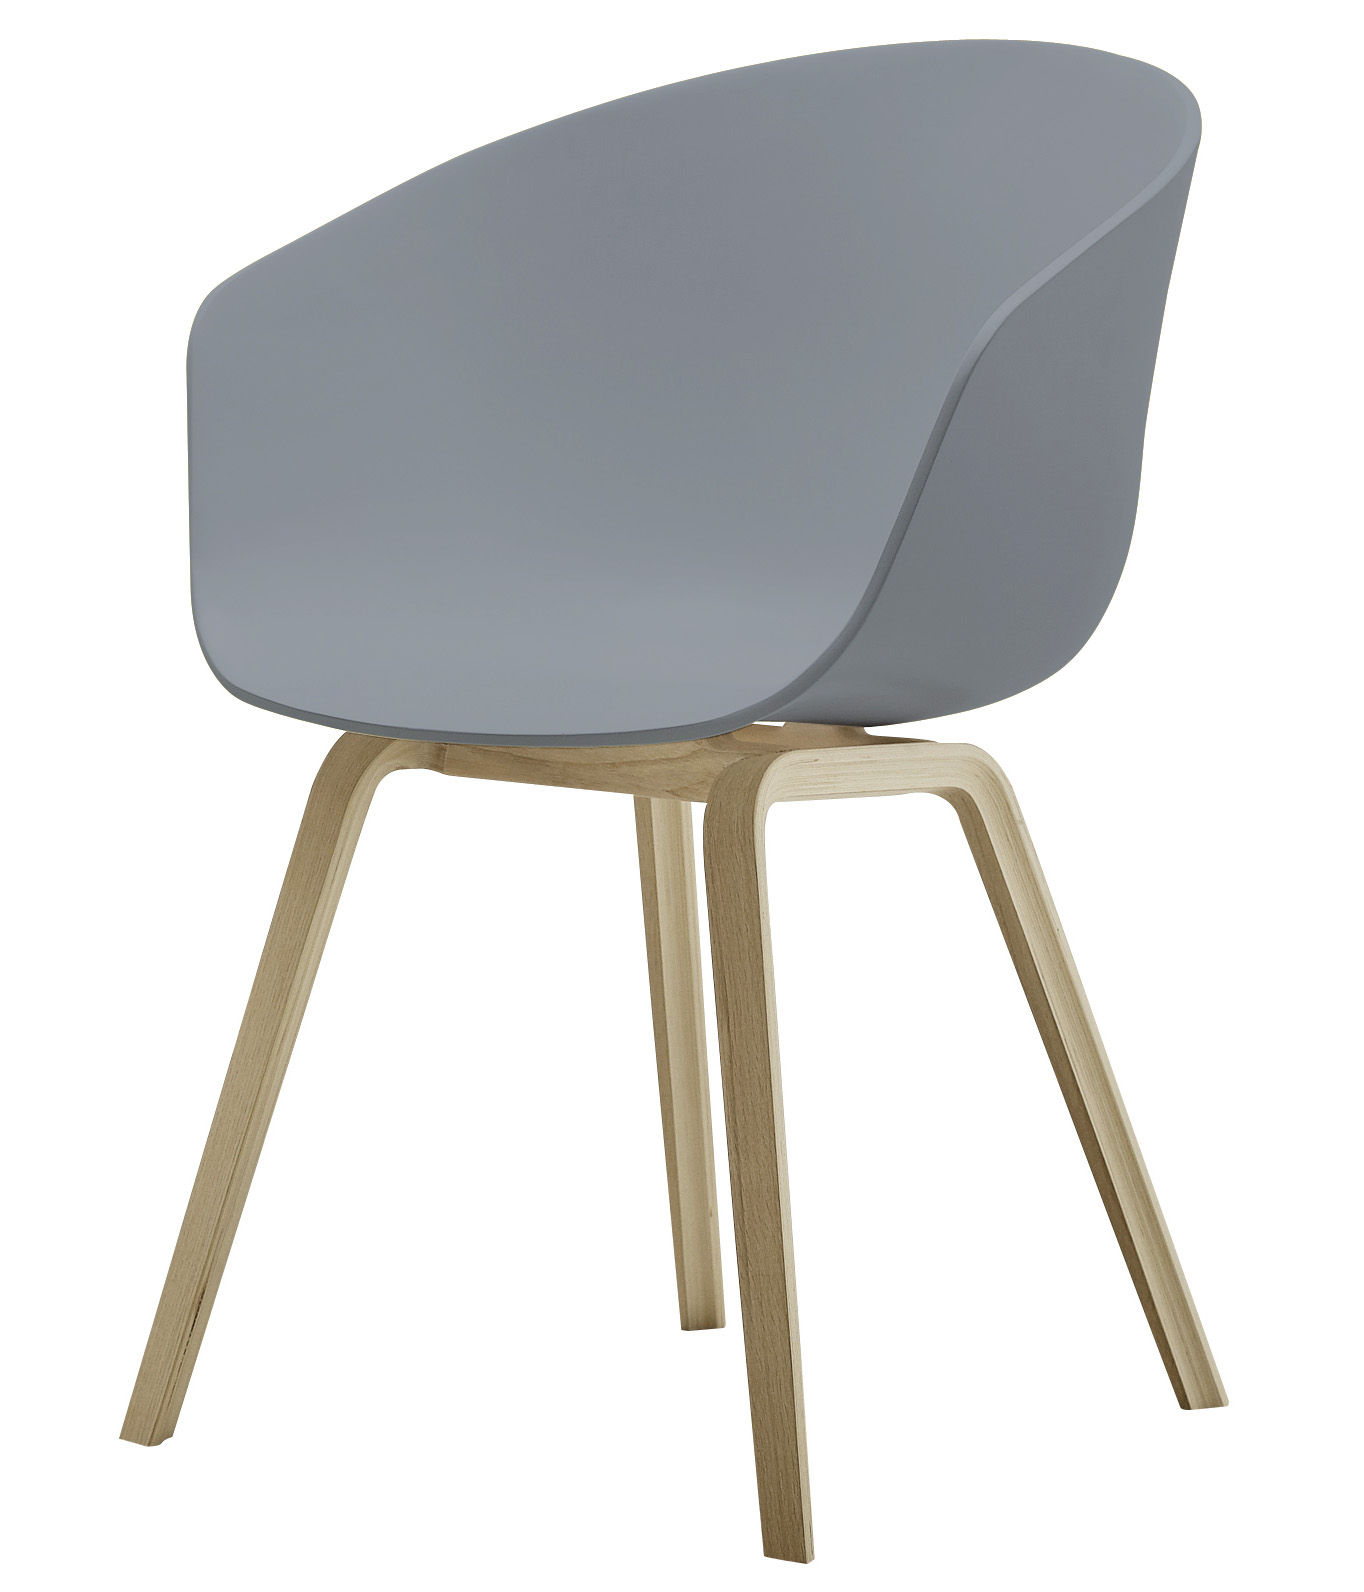 about a chair armchair plastic shell wood legs grey by hay. Black Bedroom Furniture Sets. Home Design Ideas